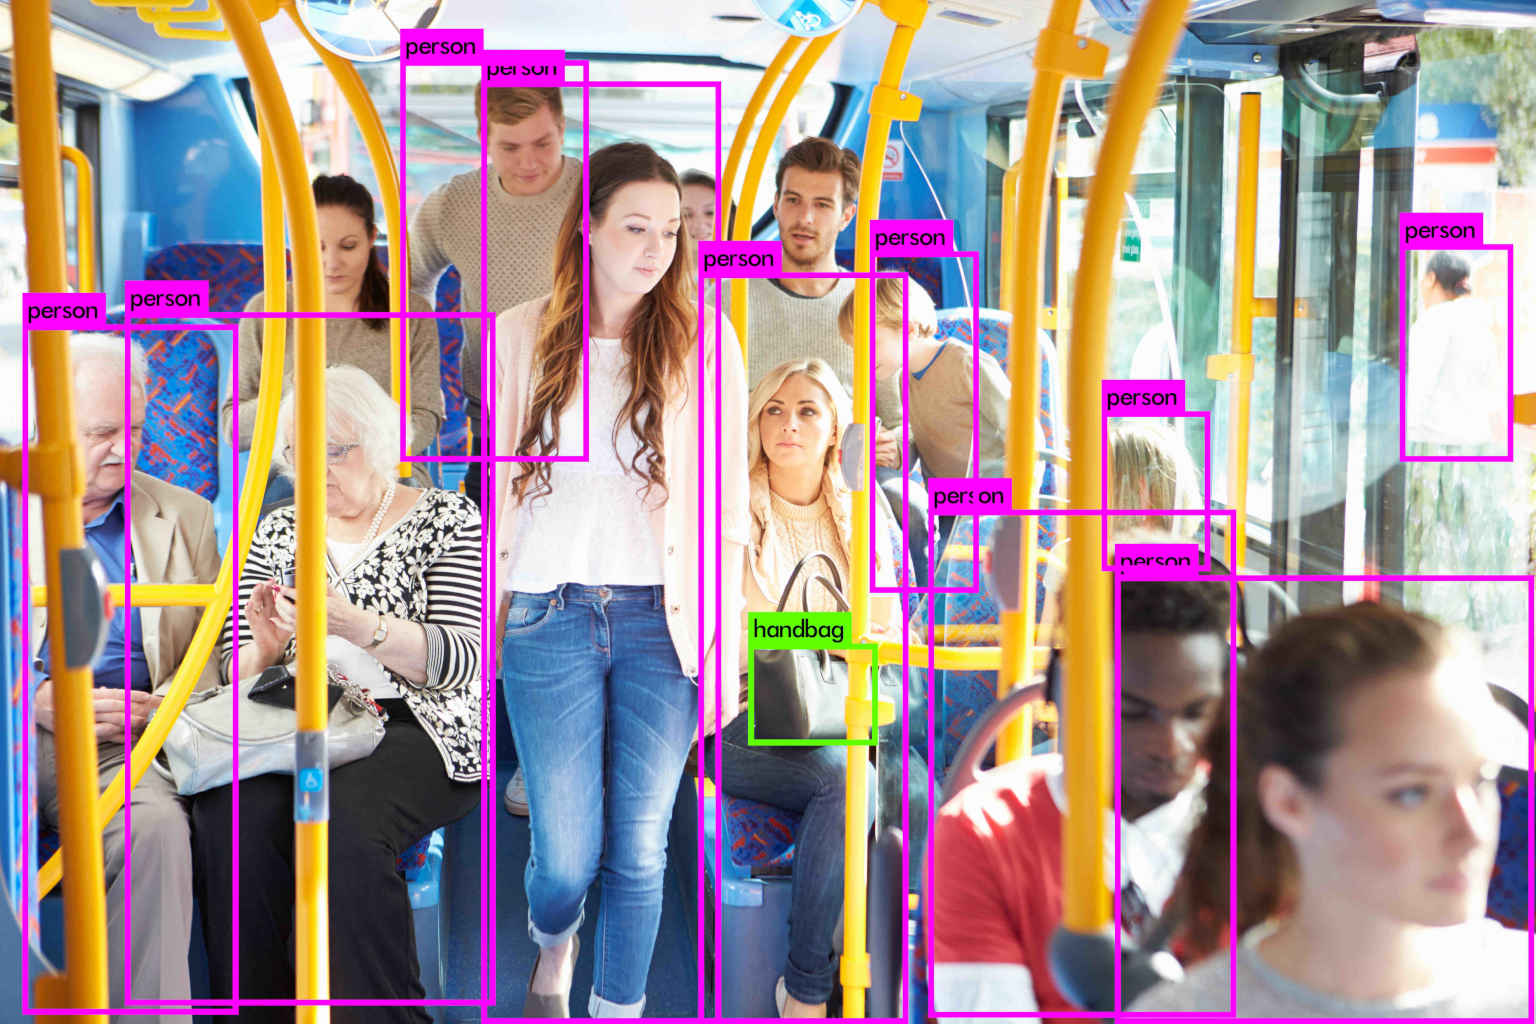 image of a crowded bus with people - automatic people counting (APC) with Isarsense